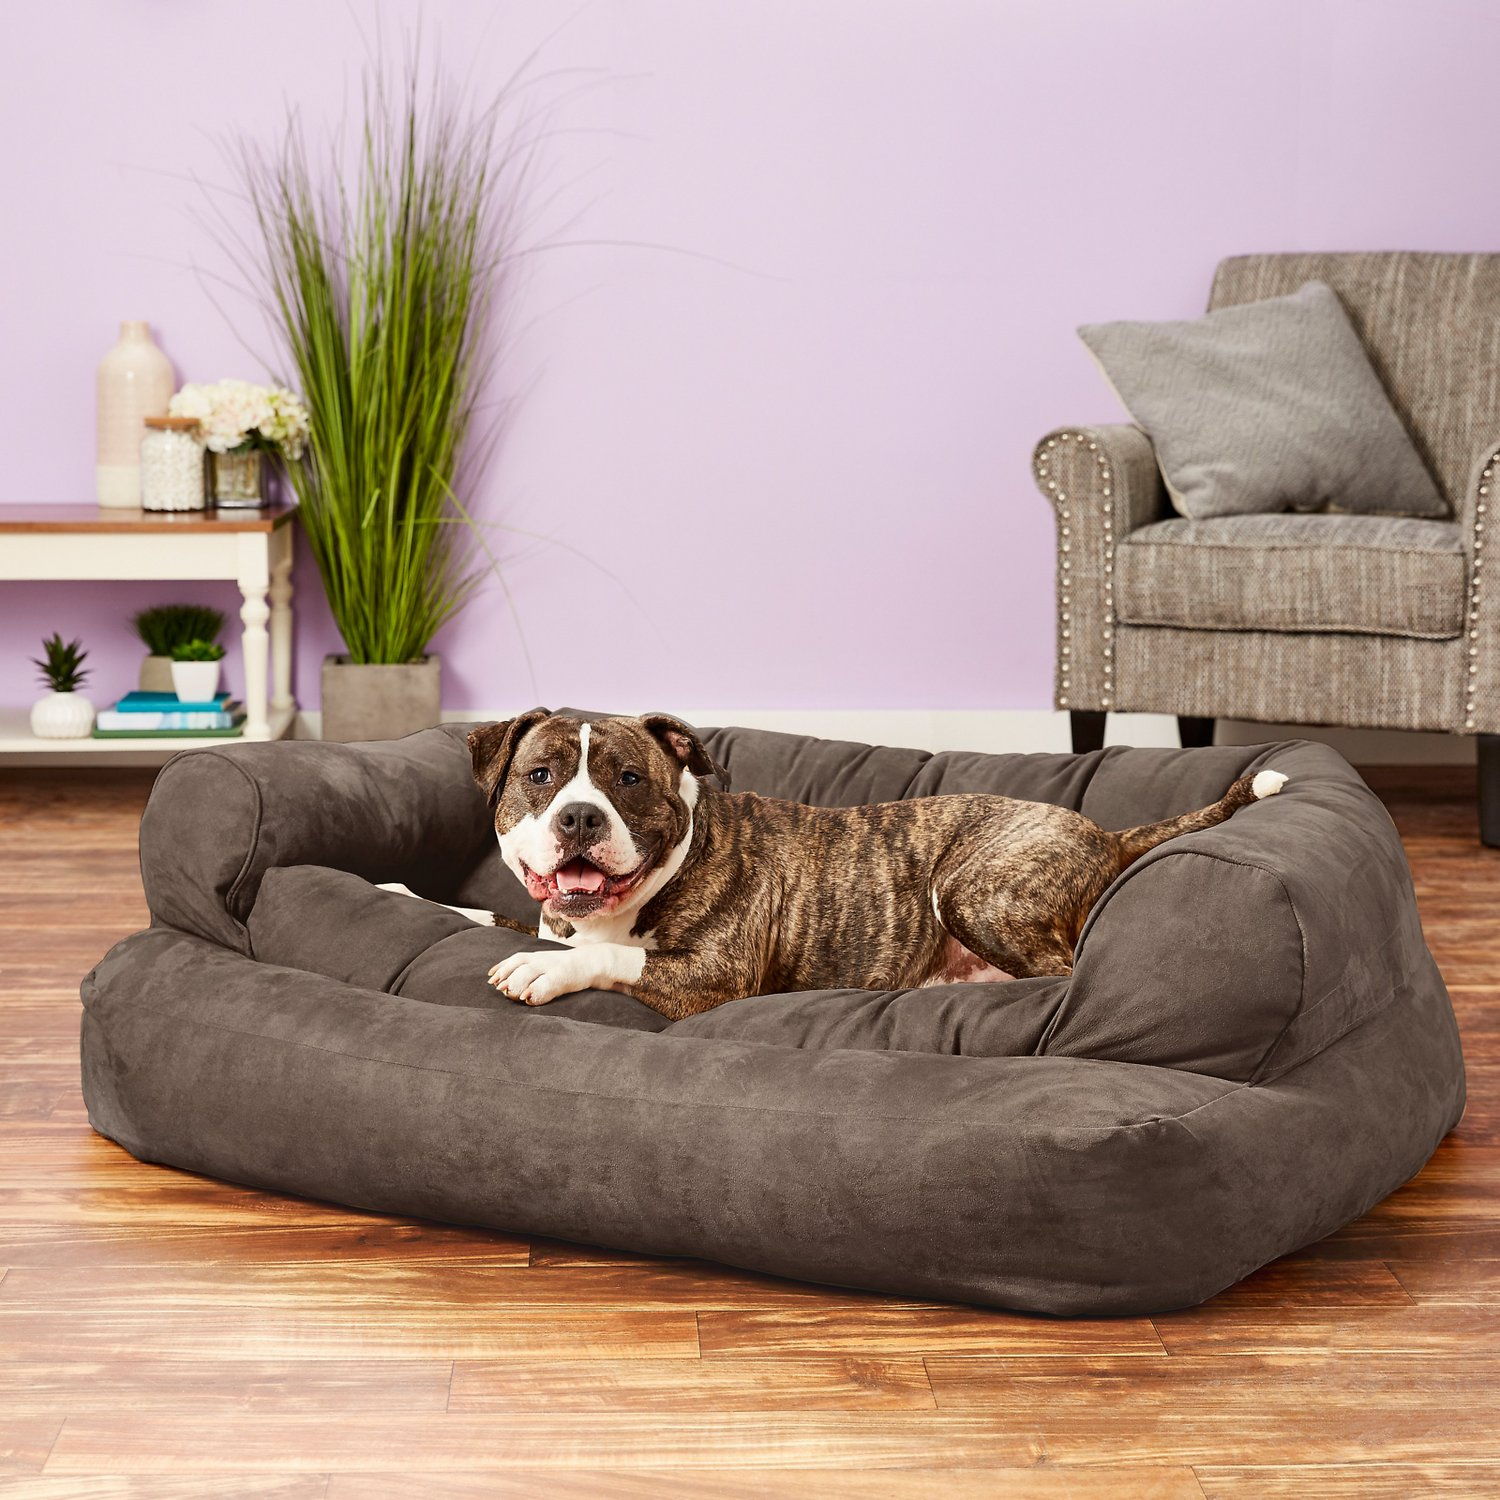 sofa covers petsmart old wooden set in chennai snoozer overstuffed pet bed replacement cover